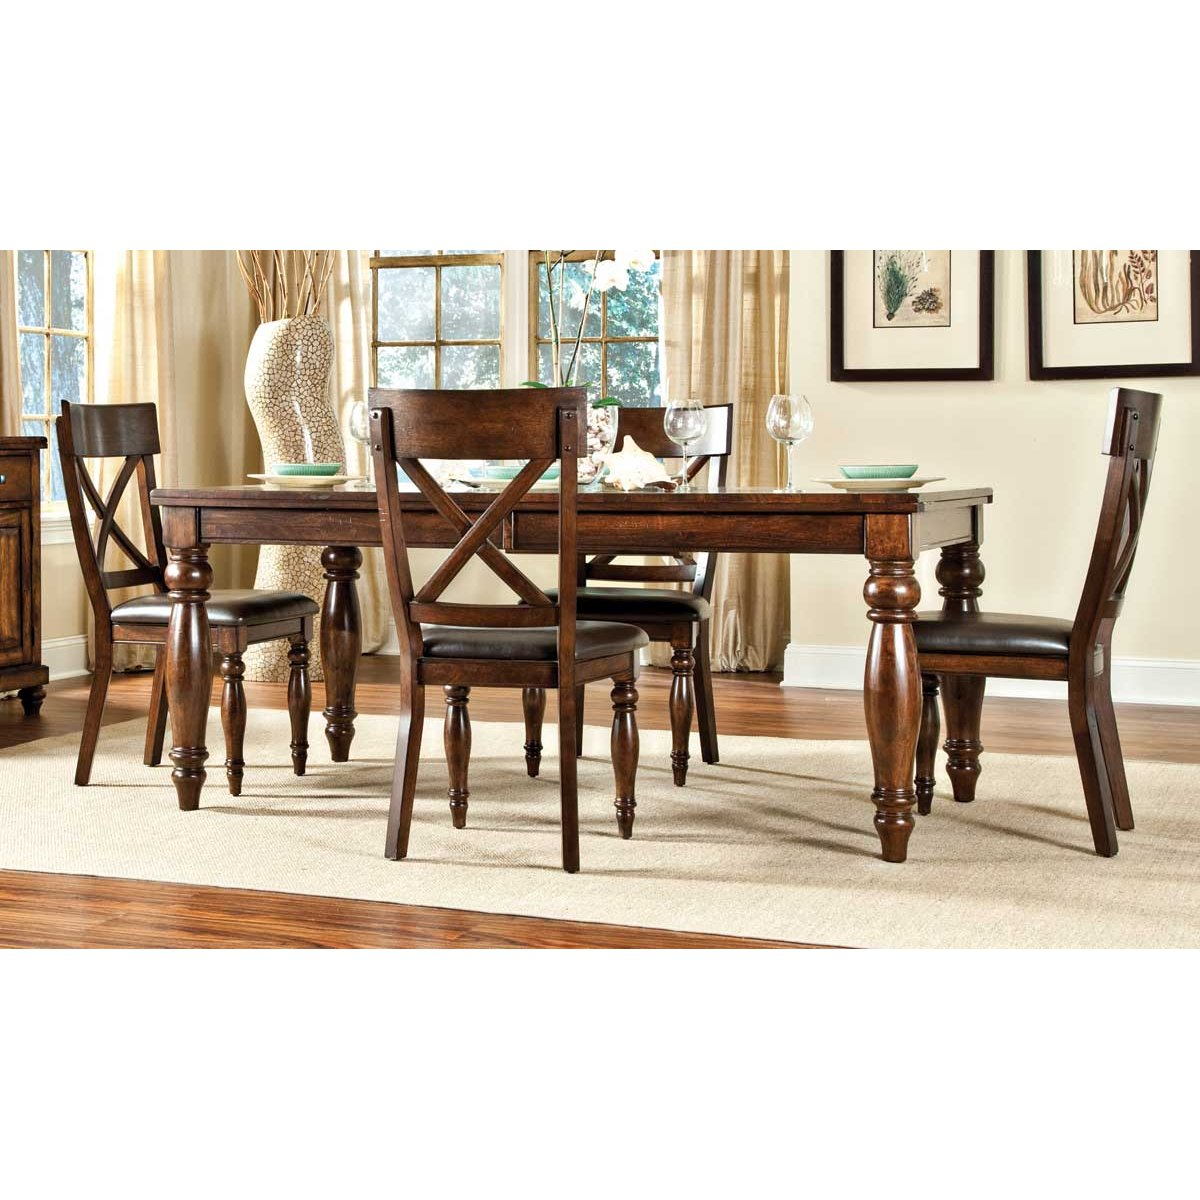 Raisin 5 Piece Dining Set With X Back Chairs Kingston Rc Willey Furniture